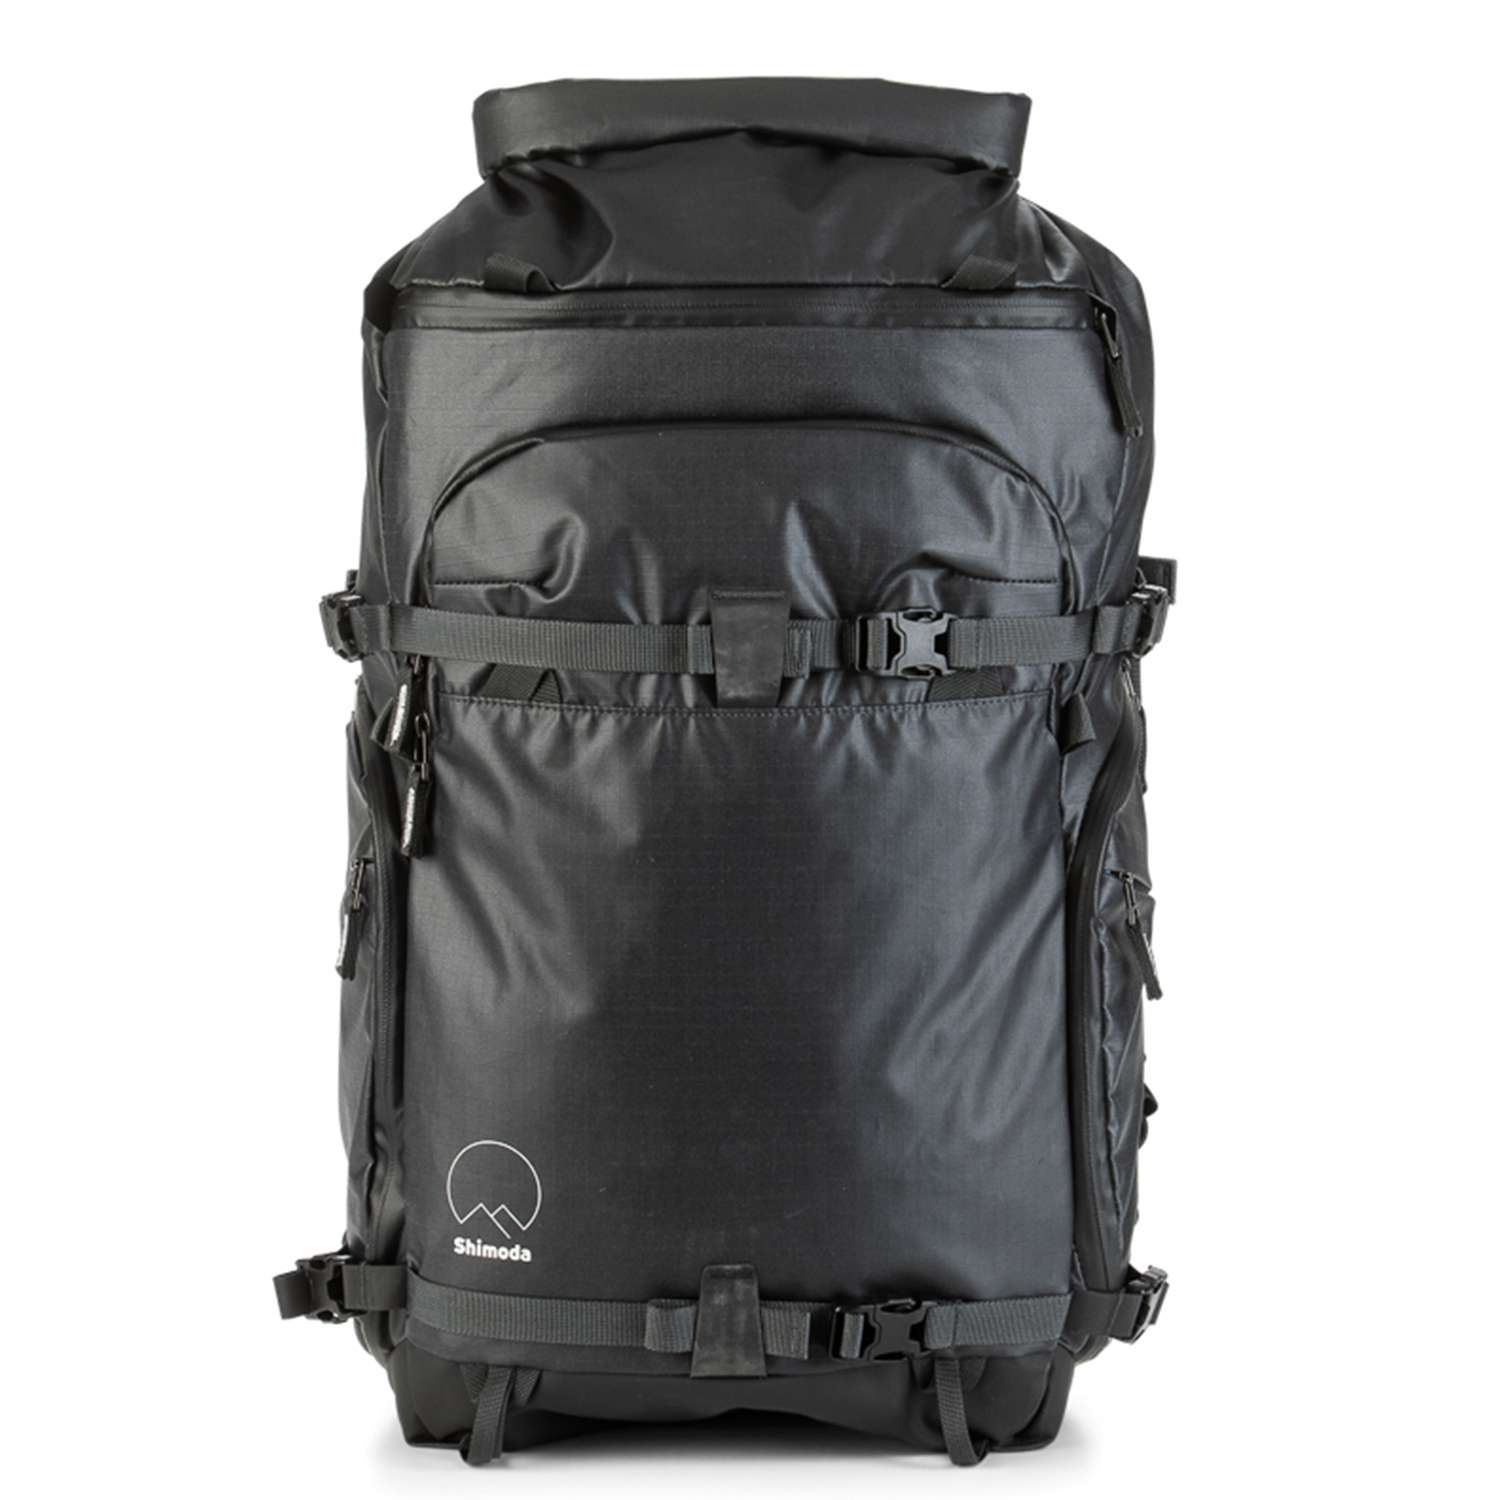 Shimoda Action X30 Starter Kit Backpack